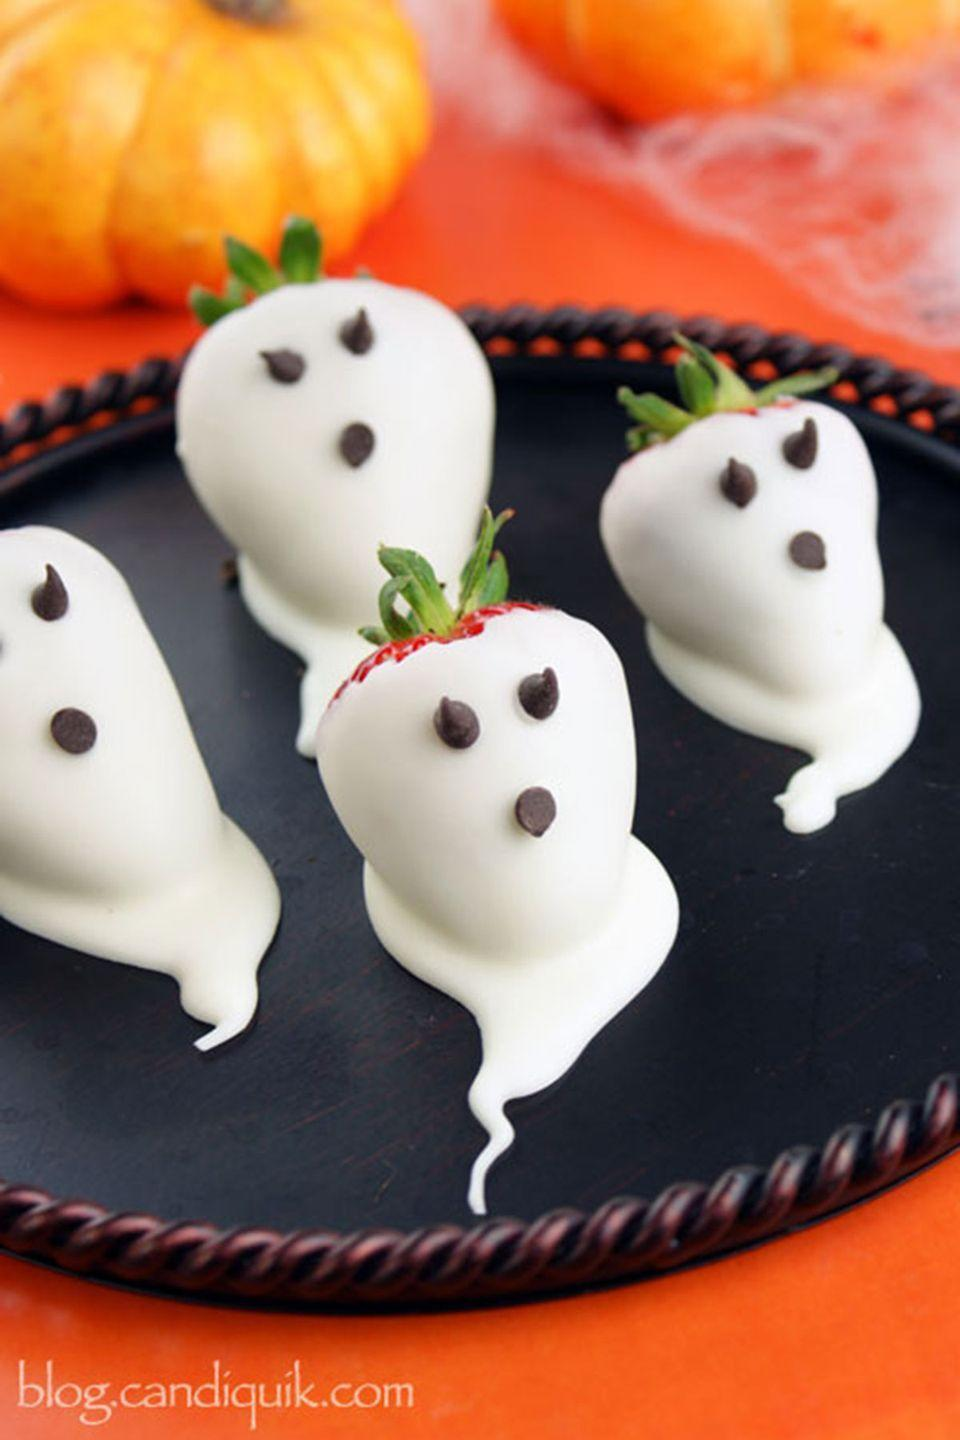 """<p>Kids and adults alike will love these adorable little treats. Fool them all into snacking on fresh fruit (covered in white chocolate) all night long.</p><p><strong>Get the recipe at <a href=""""http://blog.candiquik.com/strawberry-ghosts/"""" rel=""""nofollow noopener"""" target=""""_blank"""" data-ylk=""""slk:Miss Candiquik"""" class=""""link rapid-noclick-resp"""">Miss Candiquik</a>. </strong> </p>"""